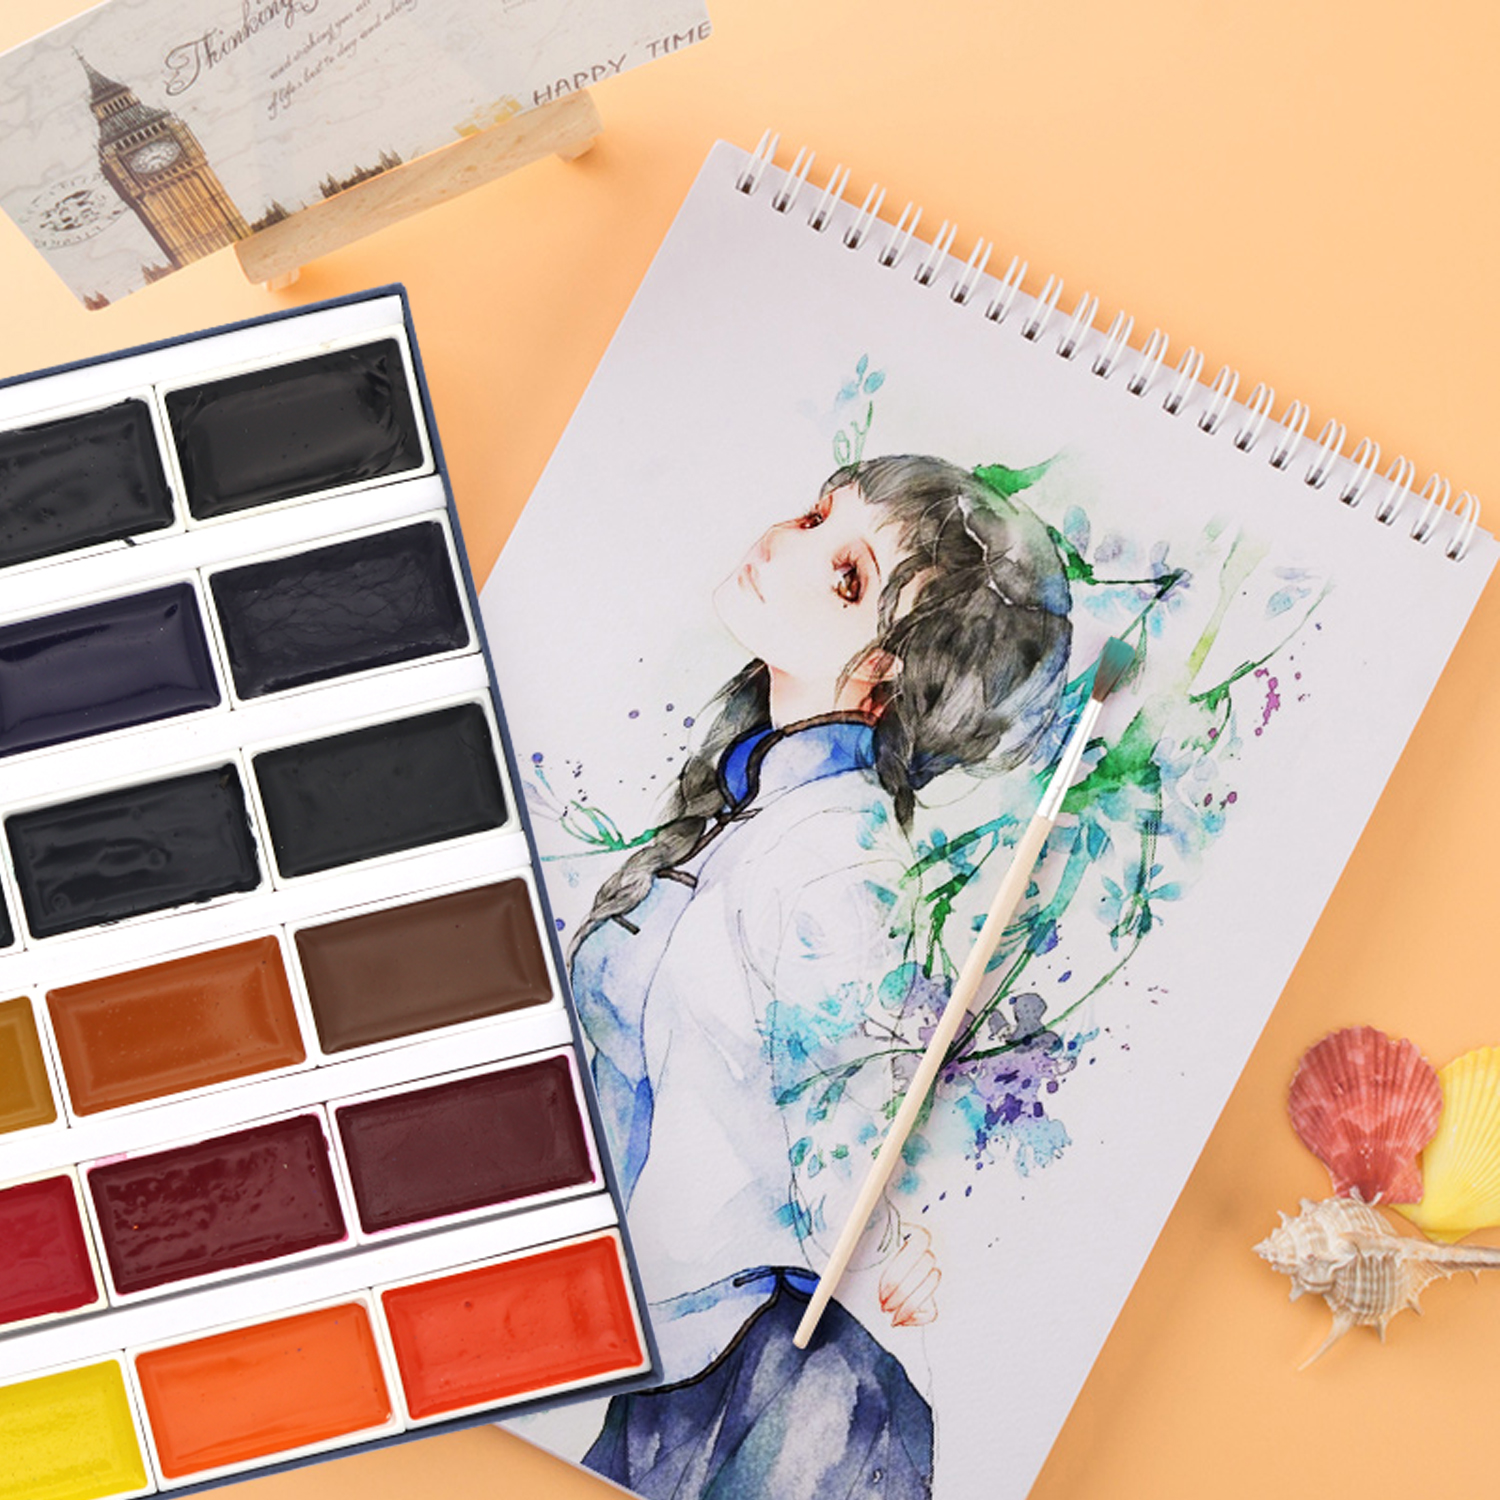 SeamiArt 24Color Neone Watercolors Paint Set Gifts Box Watercolor Pigment For Artist Painting Watercolor Paper Supplies